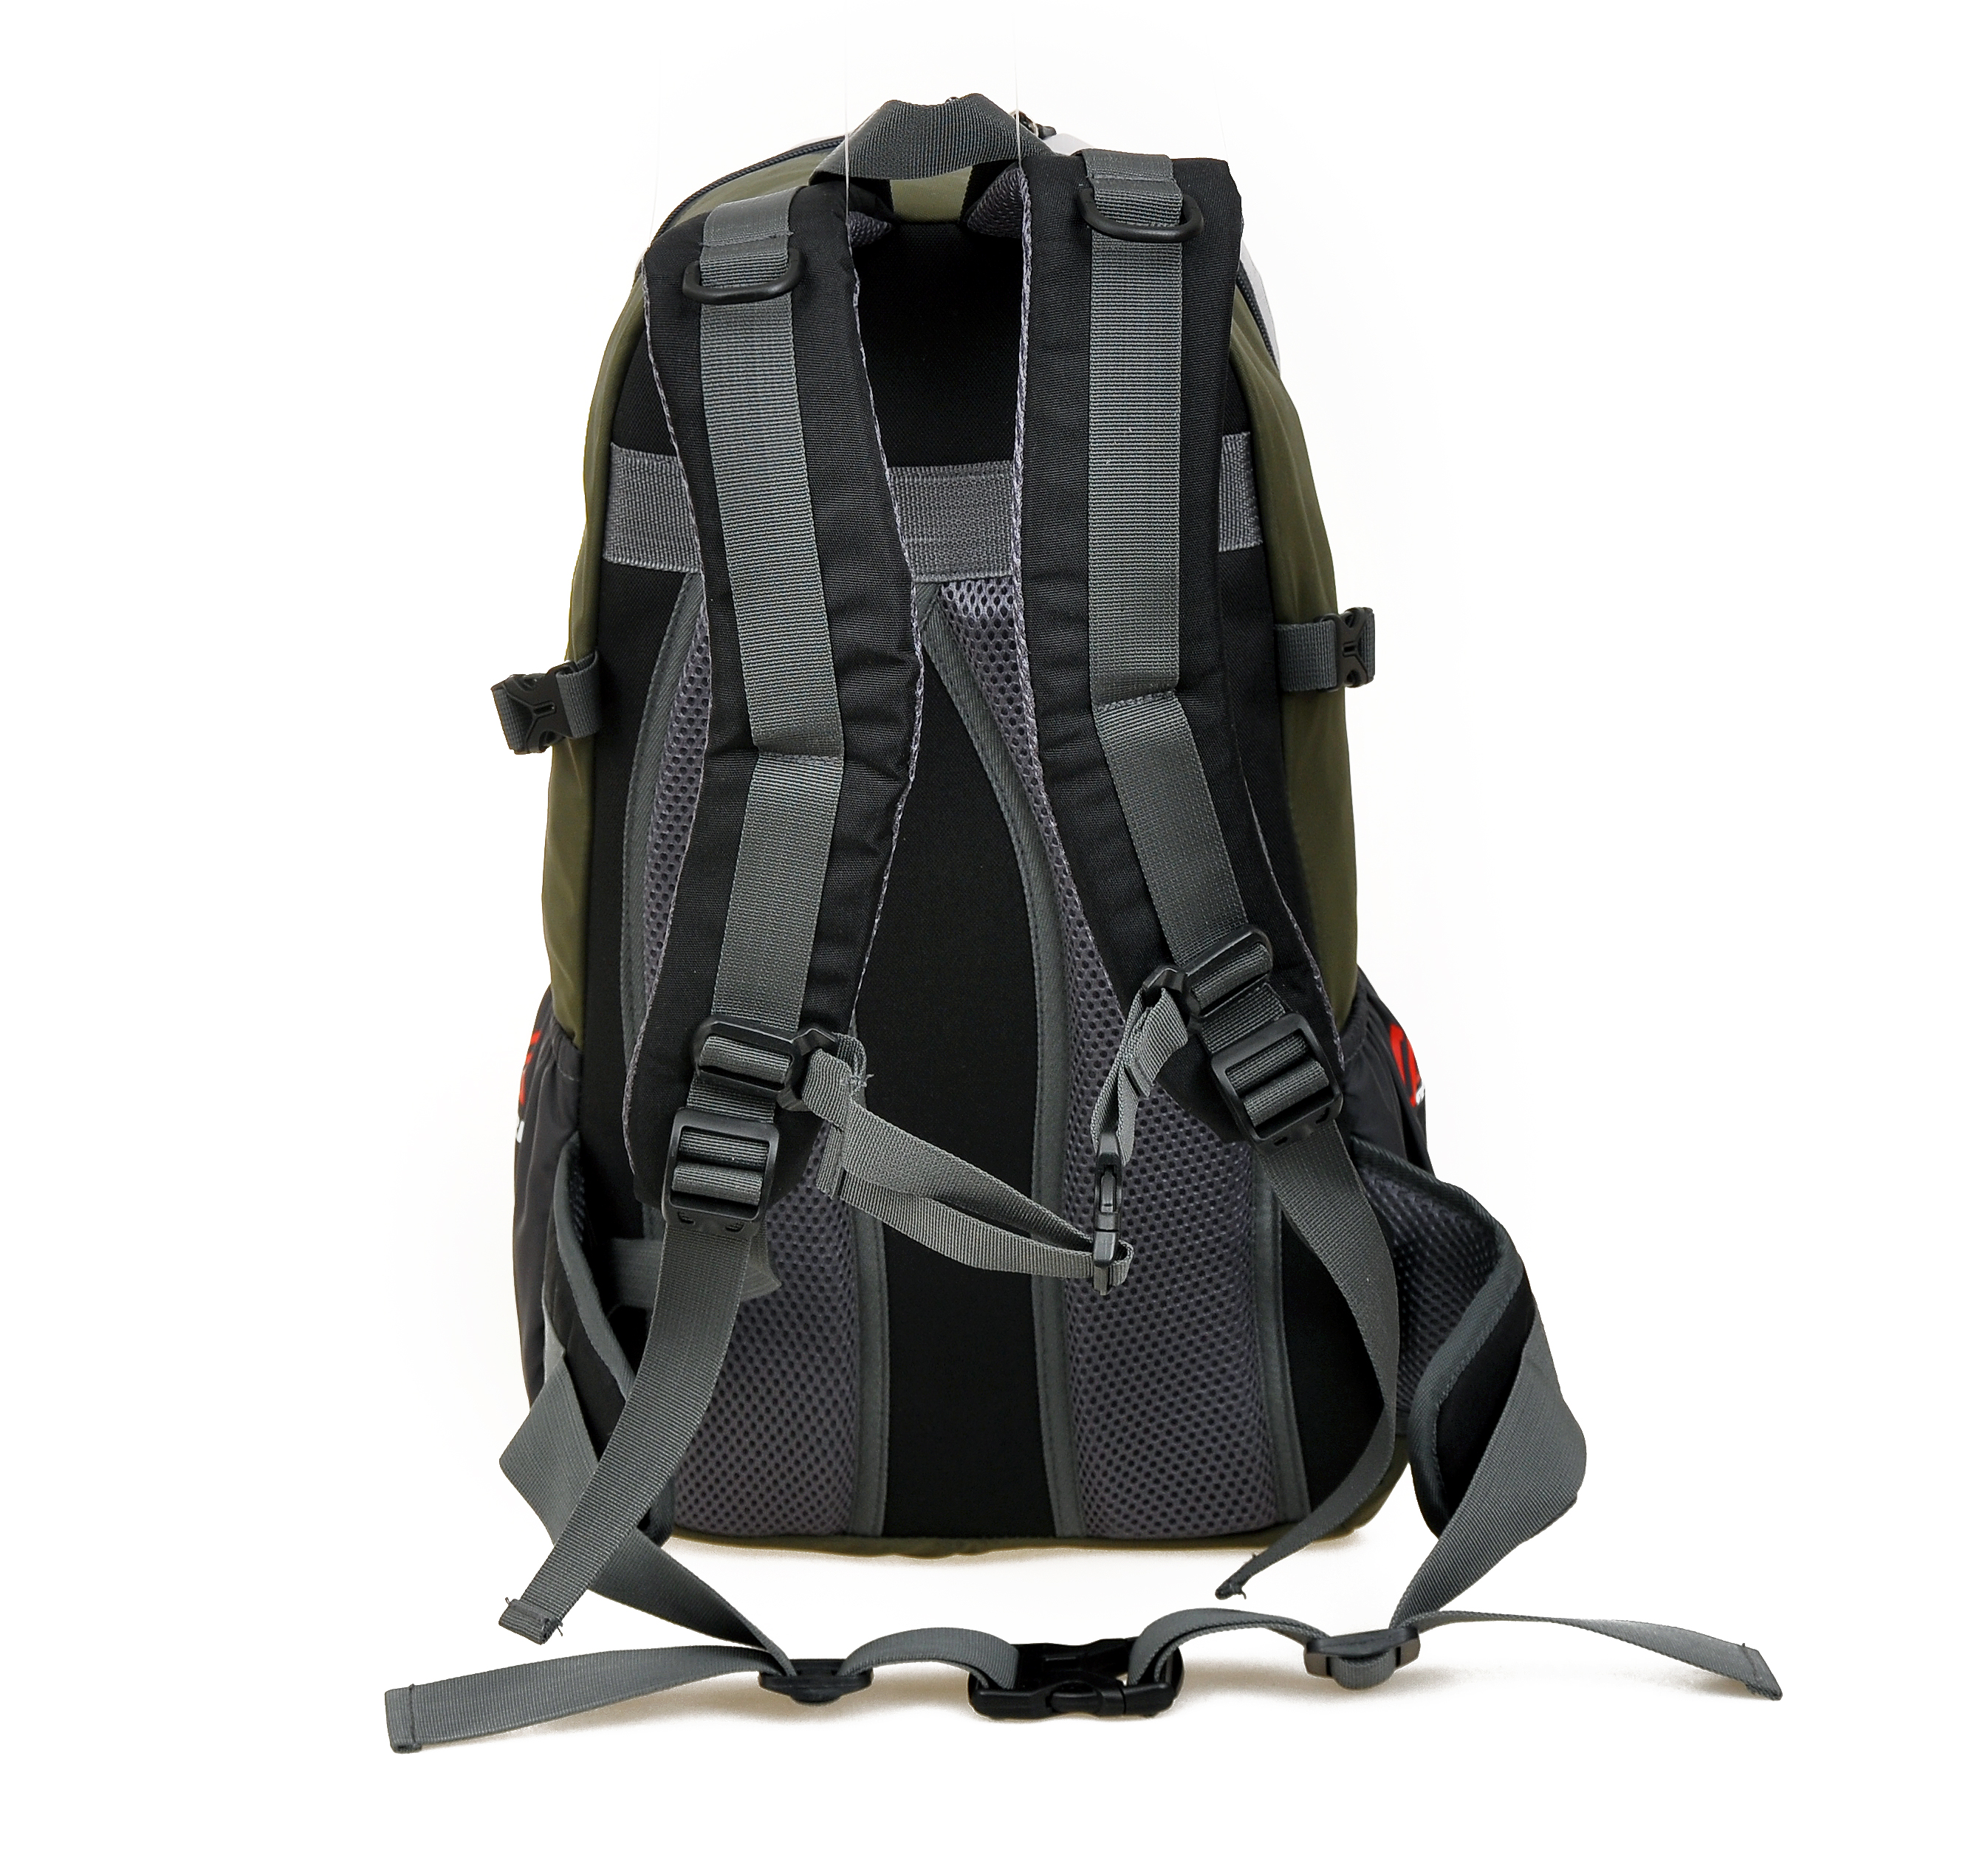 Foldable Packable Backpack